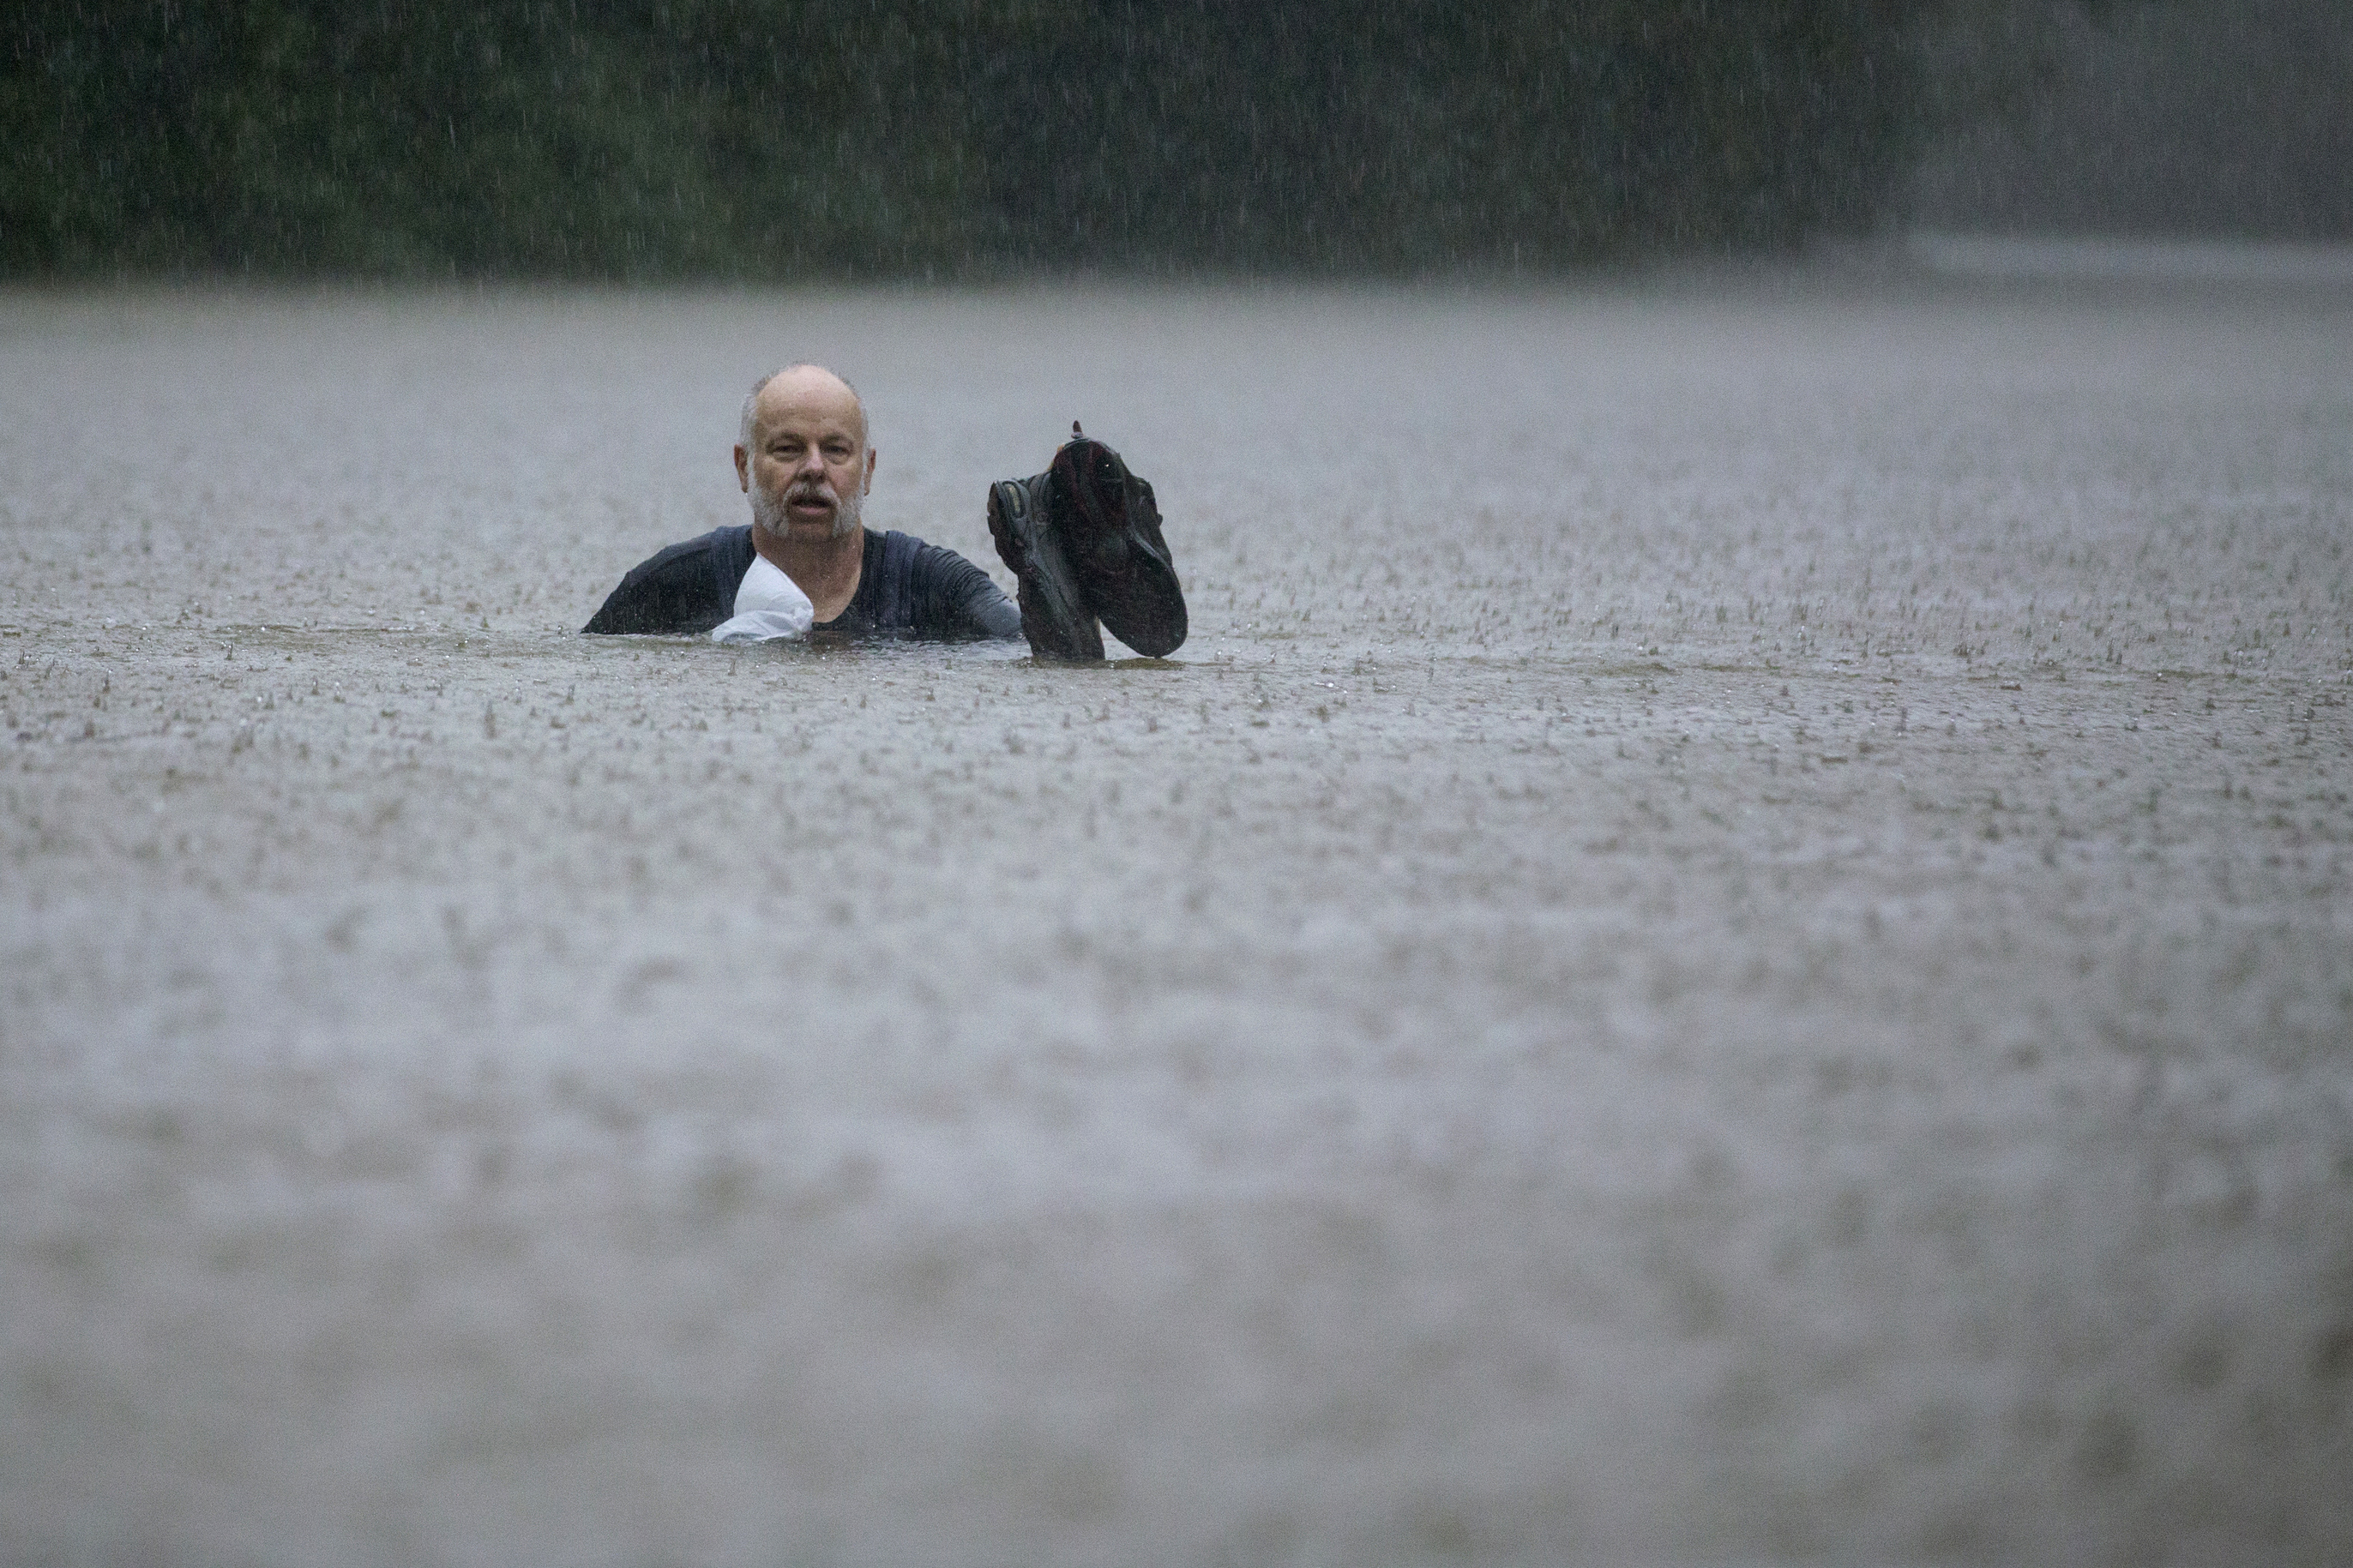 PHOTOS: Tropical Storm Imelda floods Texas